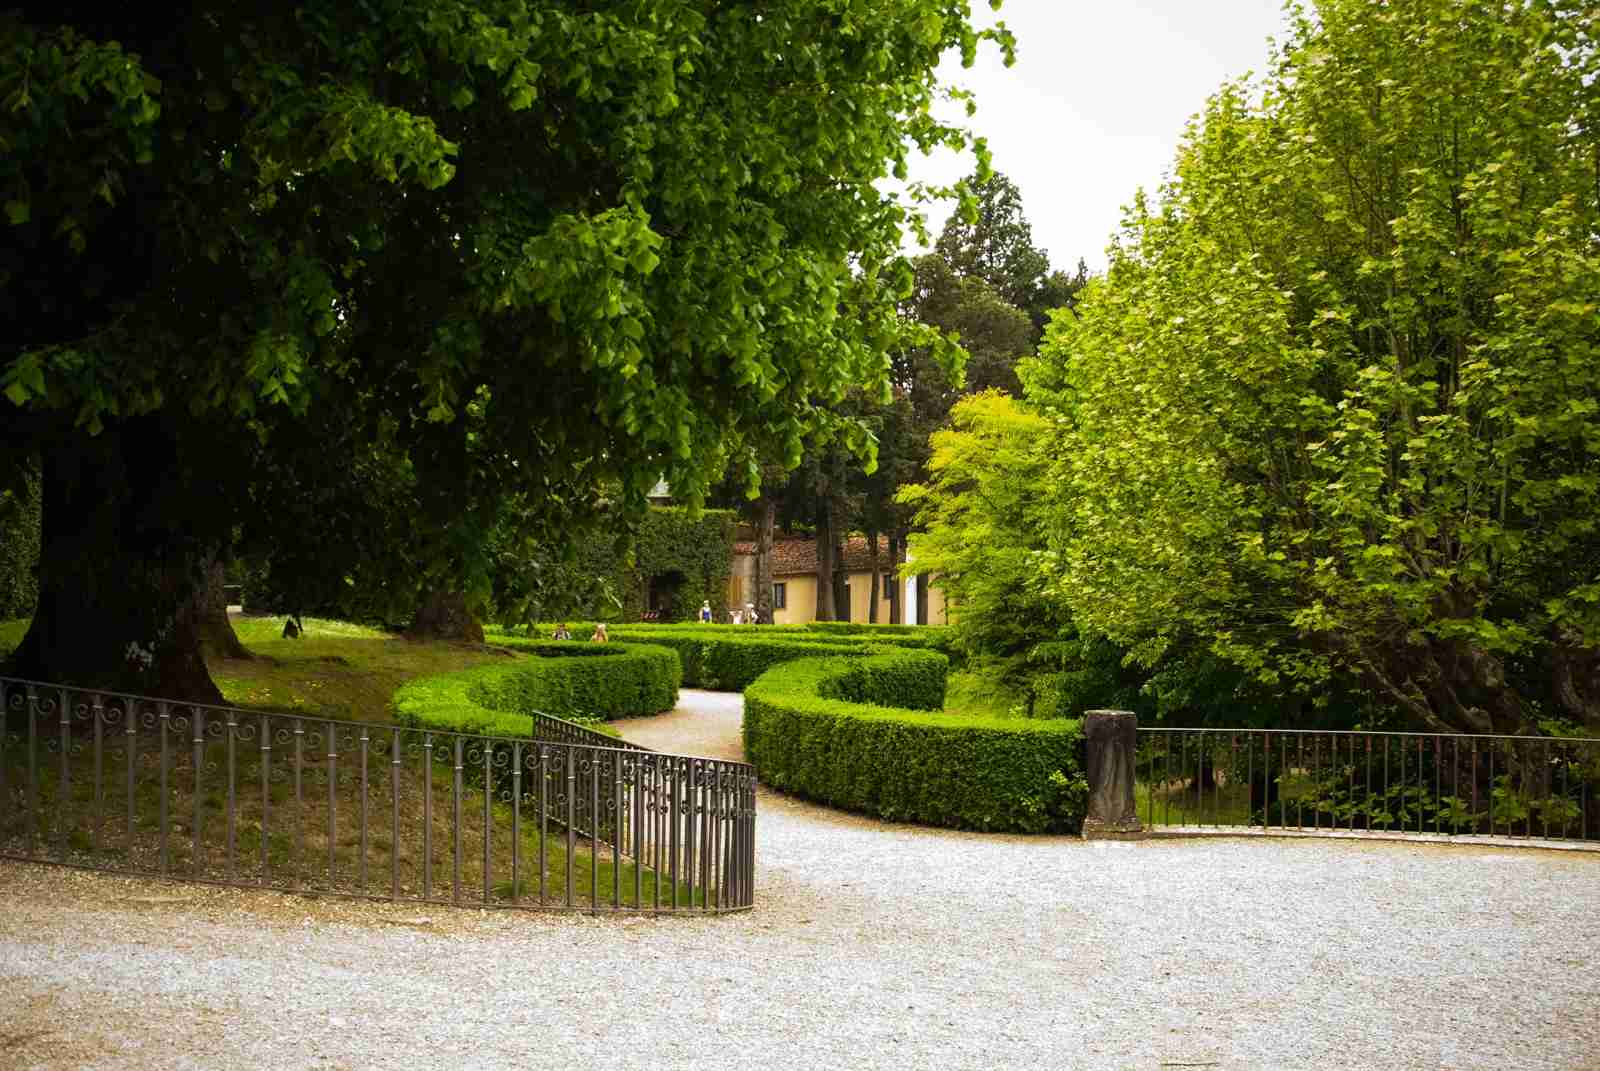 The Boboli Gardens in Florence. (Photo by Giulia Fiori Photography / Getty Images)